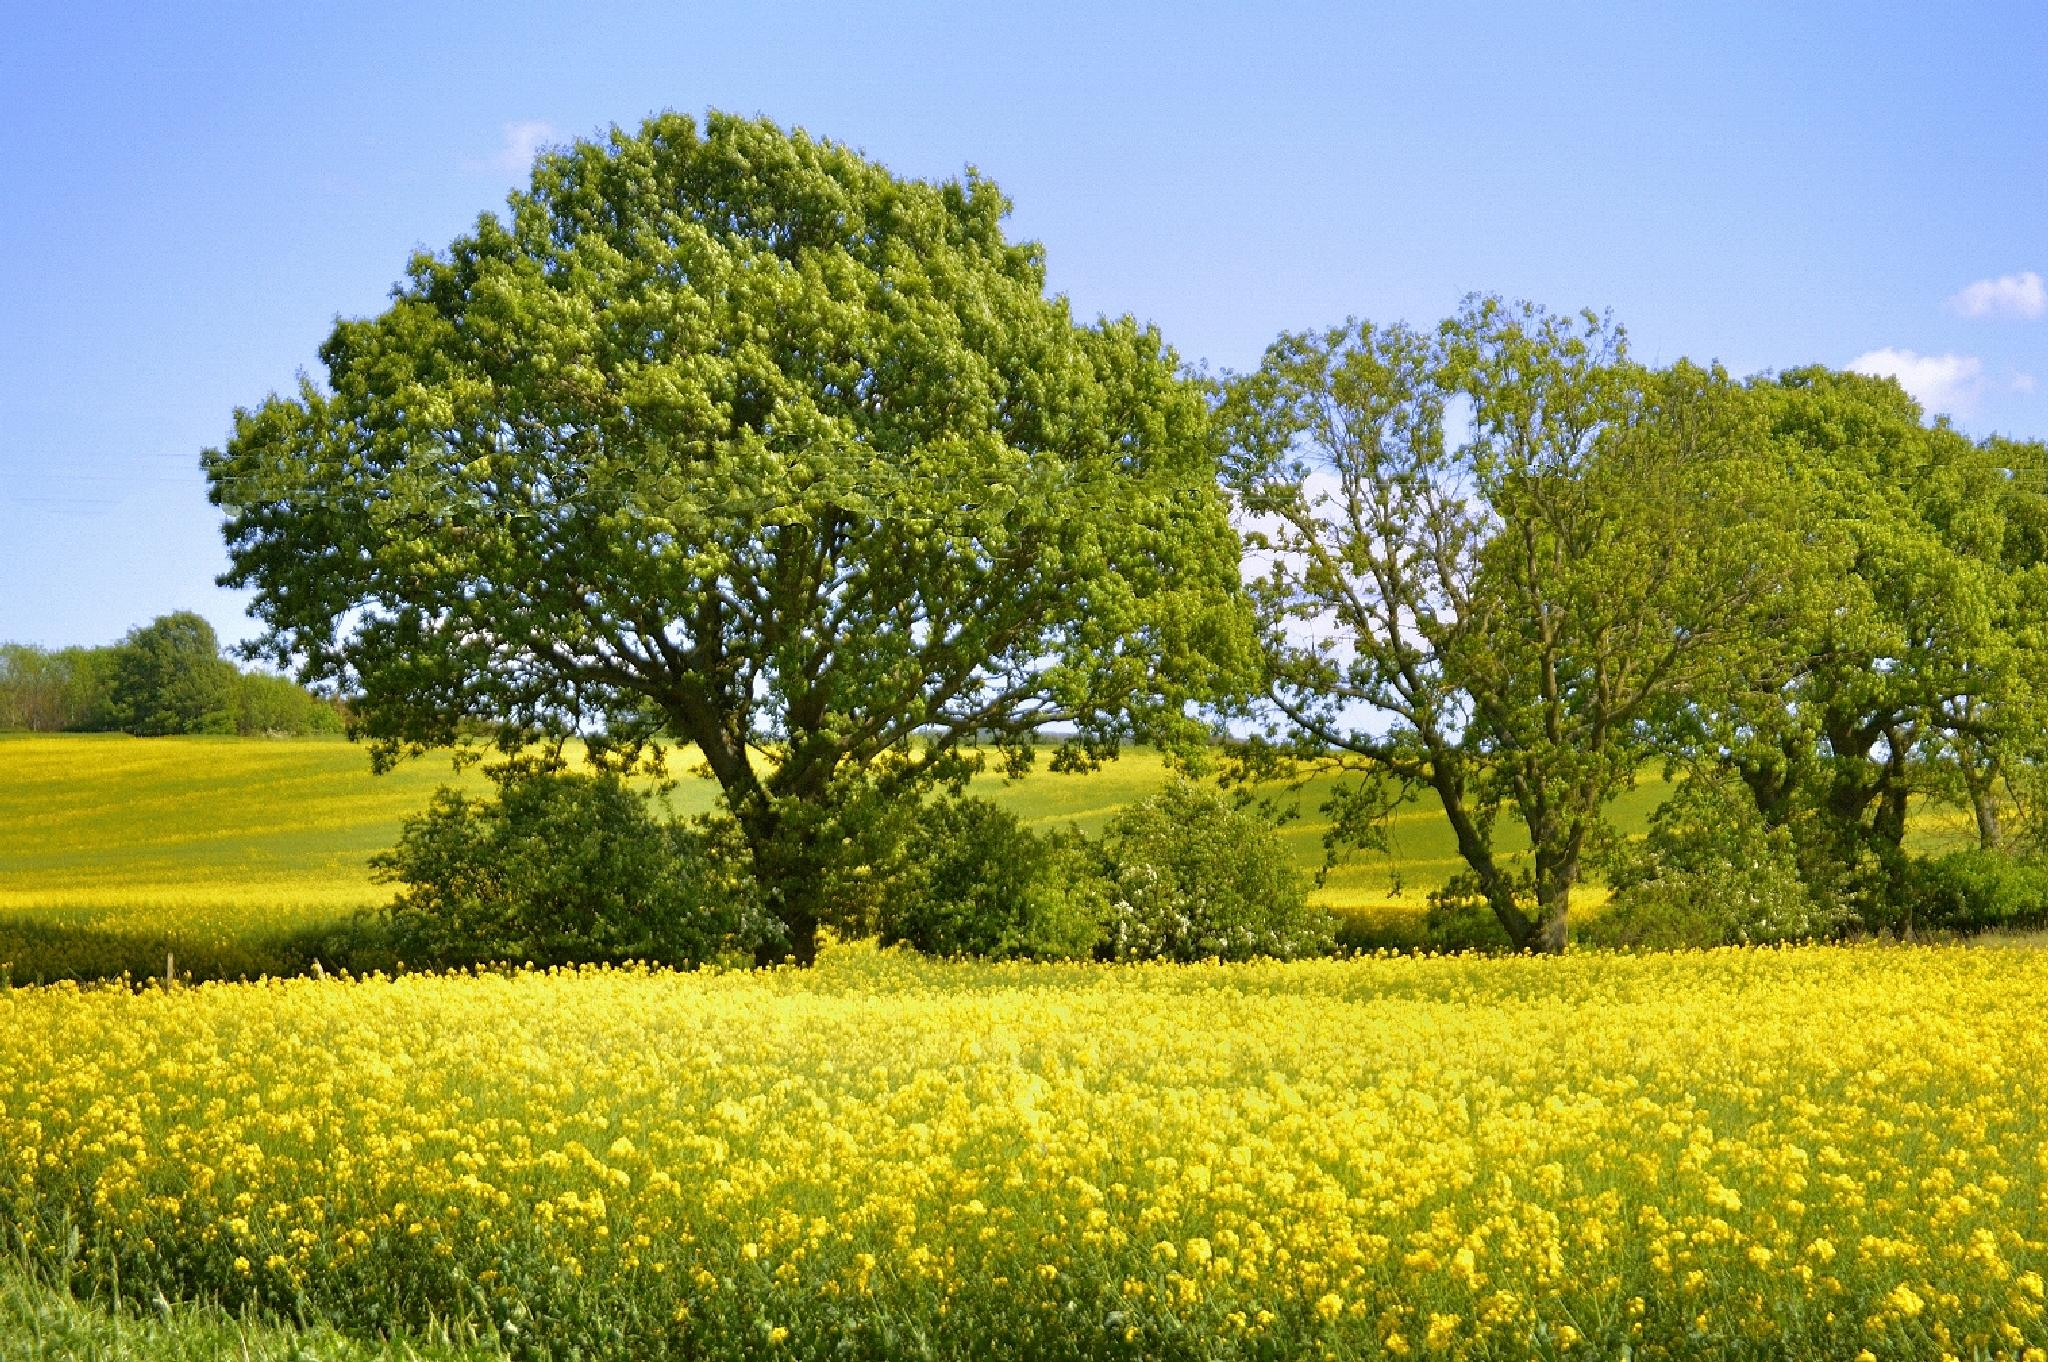 Green and yellow by John White